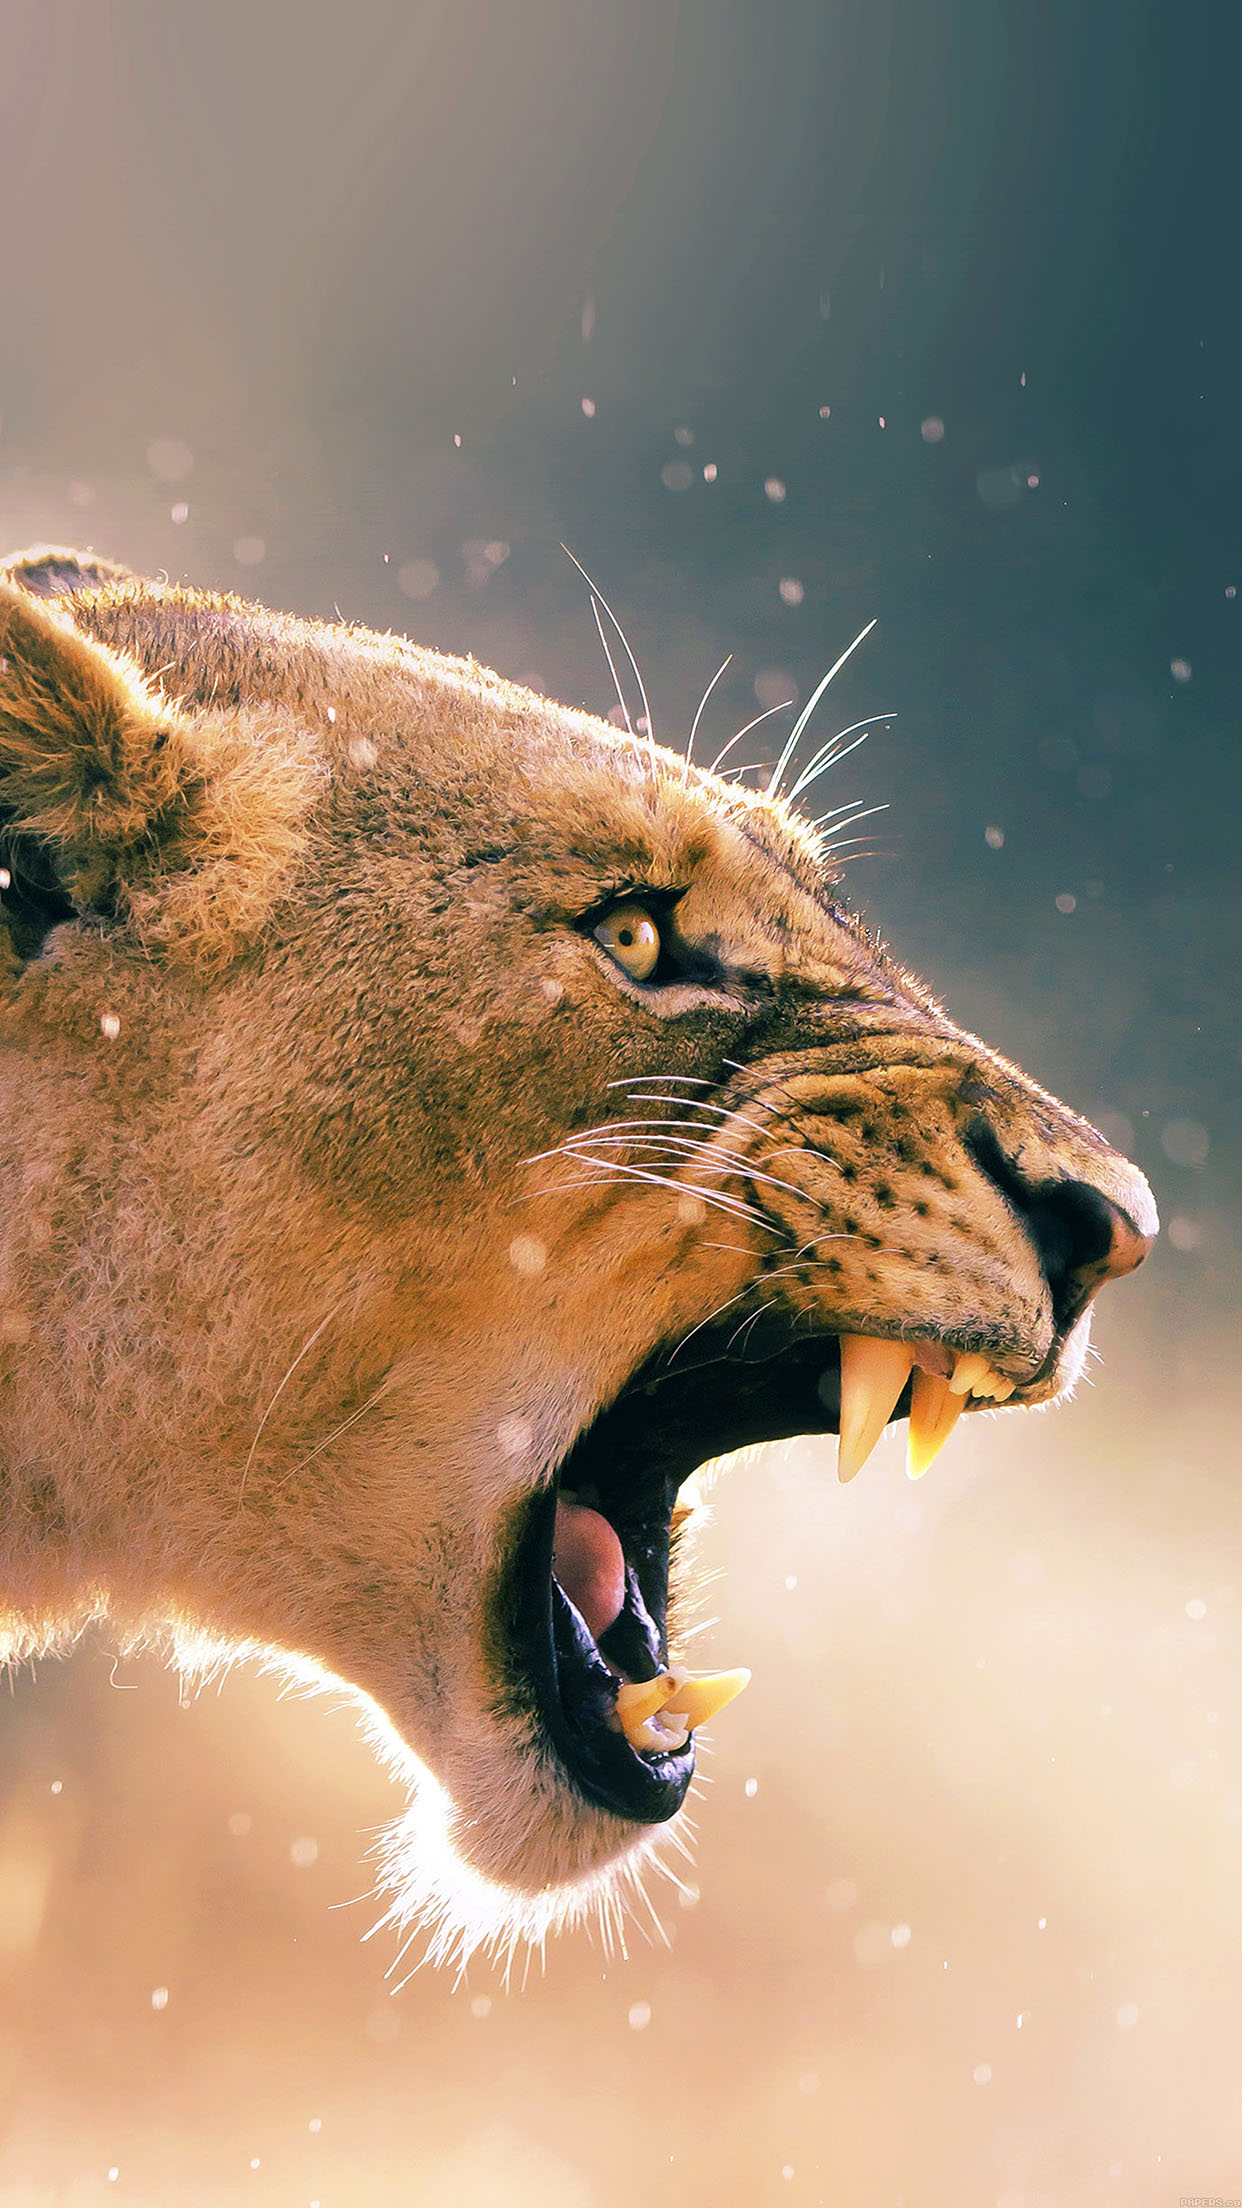 Angry Lion One Animal Nature Android wallpaper - Android ...